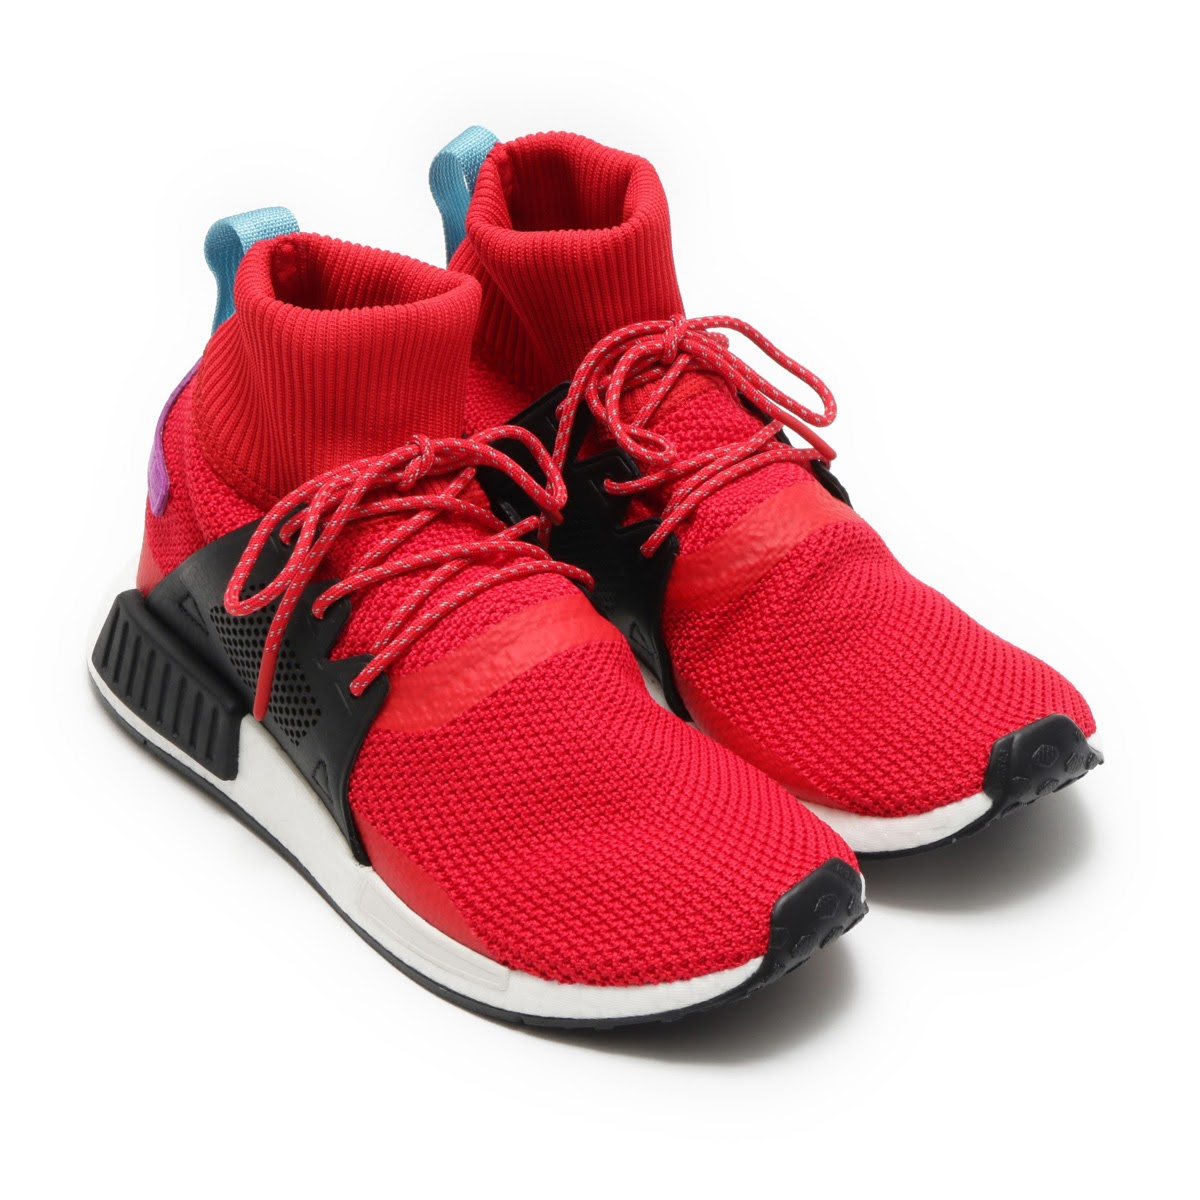 adidas Originals NMD_XR1 ADVENTURE PK(アディダス オリジナルス NMD_XR1 アドベンチャー PK) Scarlet/Core Black/Shock Purple【メンズ スニーカー】17FW-S